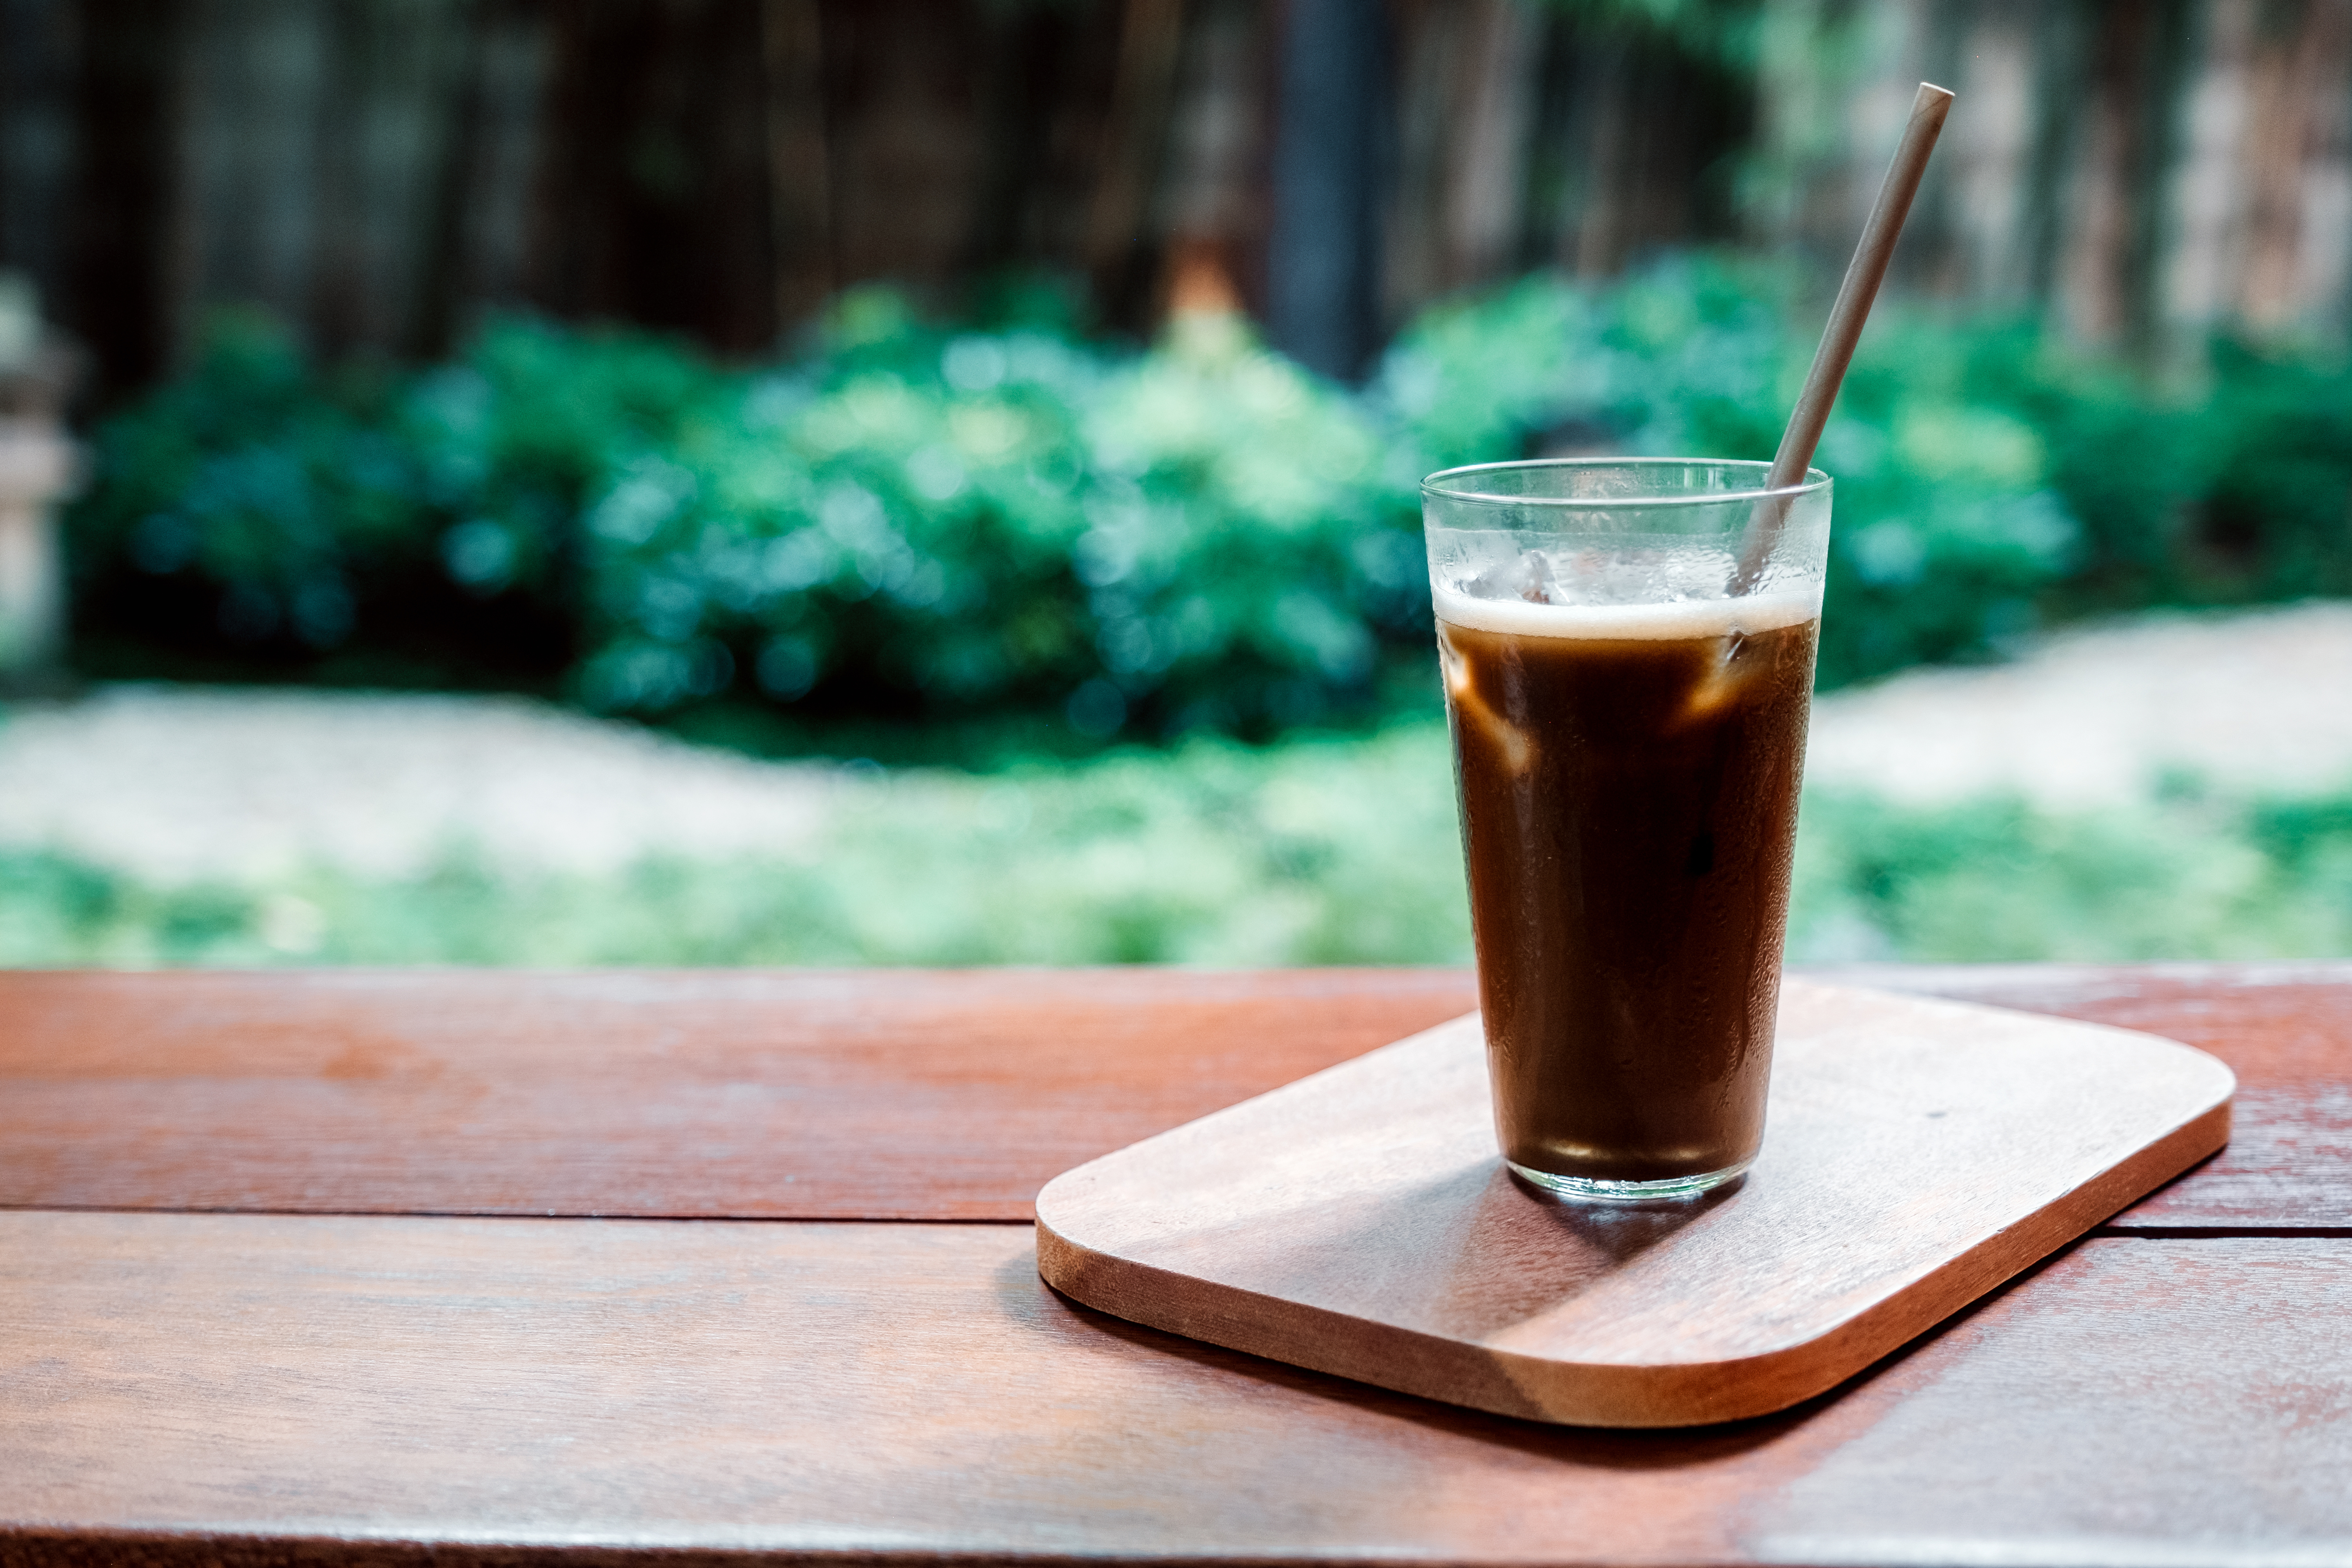 Hojicha is made from roasted green tea leaves, stems and stalks, giving it an earthy reddish-brown hue that makes it look more like black tea or coffee than its verdant cousins.